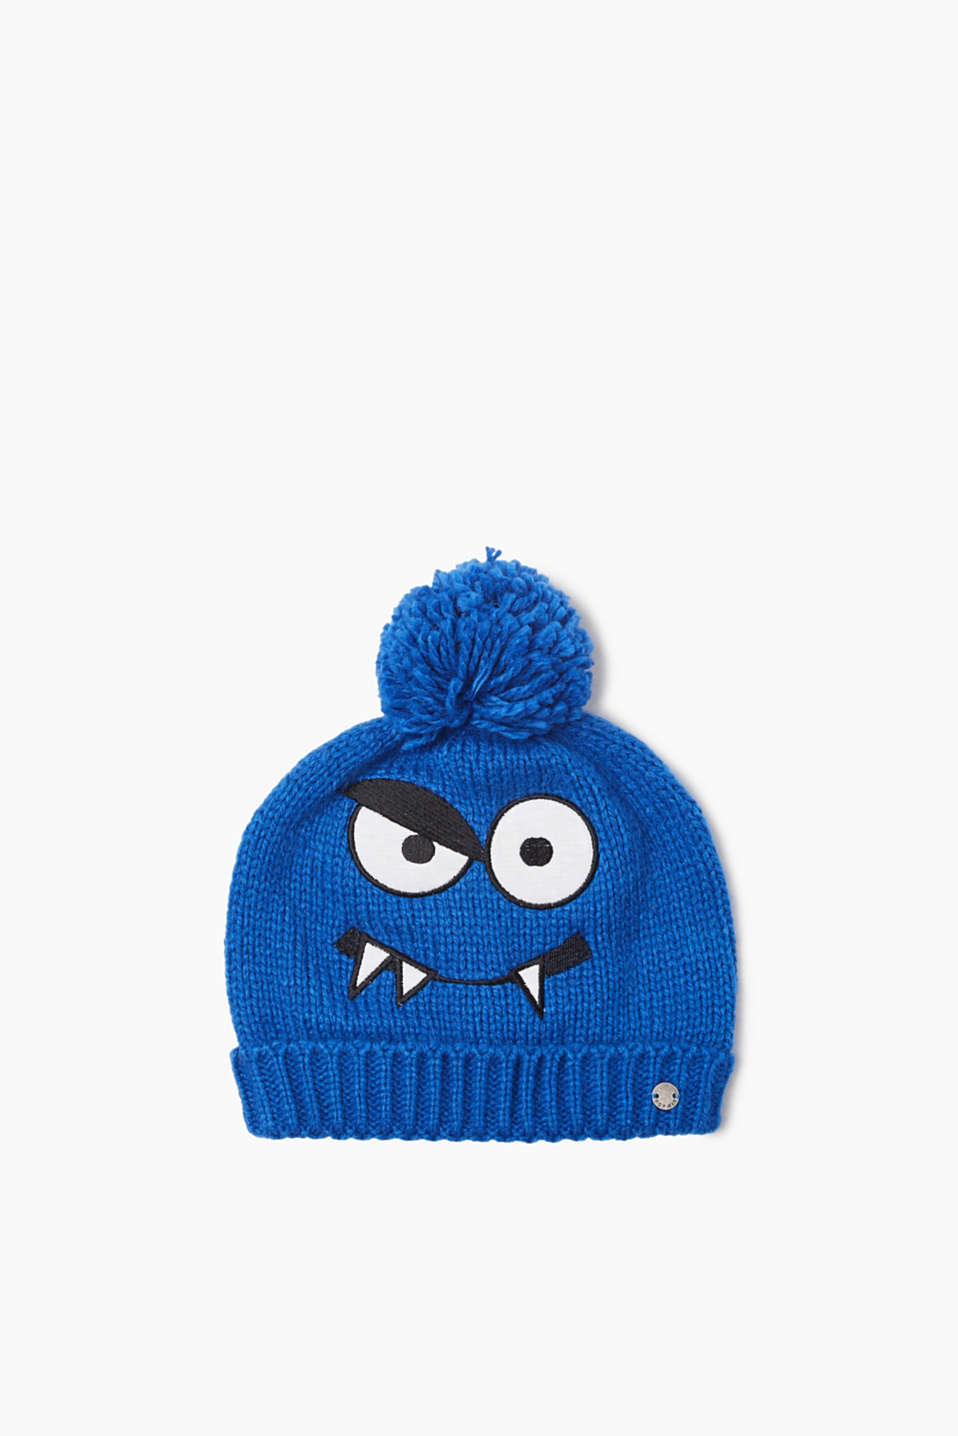 Knitted hat with pompom, appliquéd monster motif and a jersey lining